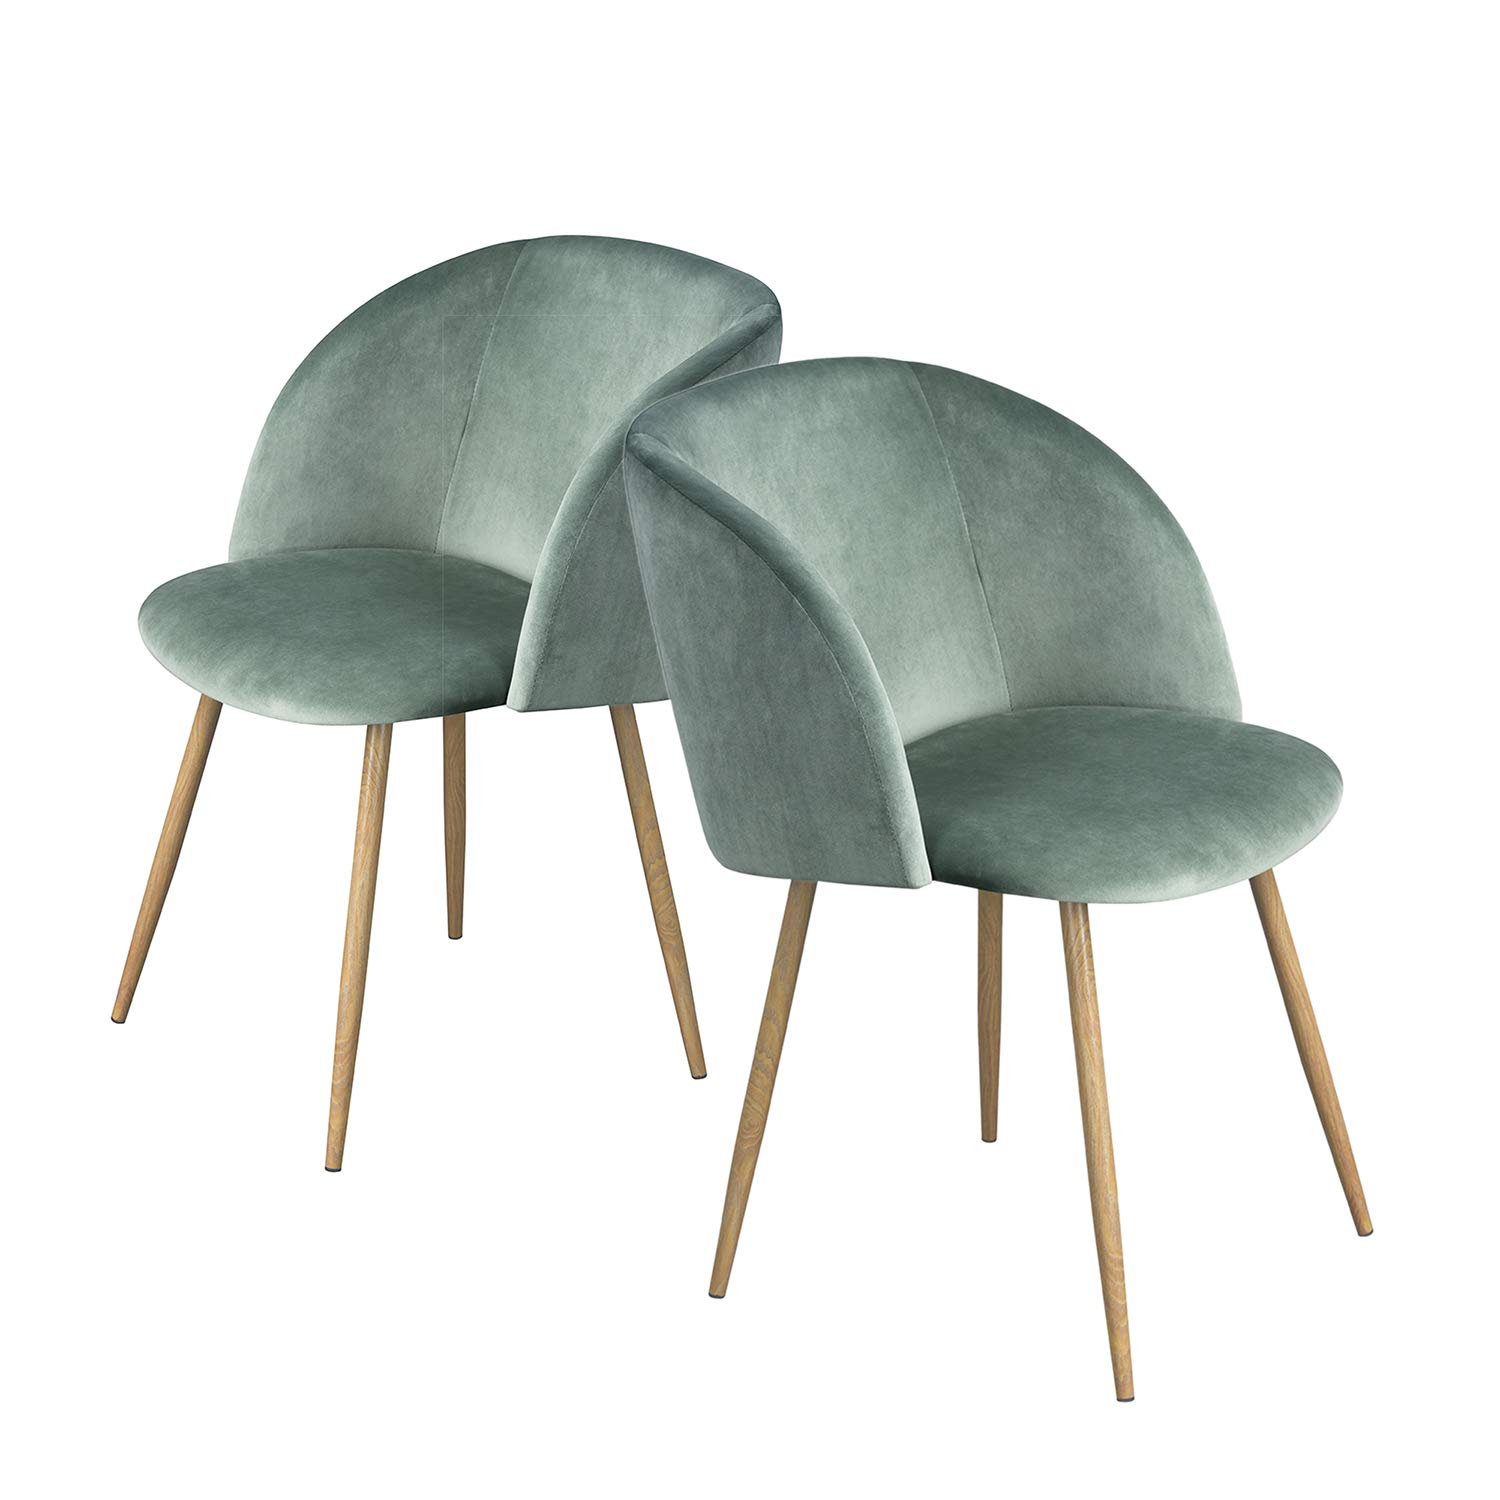 HomyCasa Dining Chair Accent Chair Set of 2 for Living Room, Side Chair Guest Chair Velvet Fabric Ergonomic Padded Seat Armrest with Metal Legs Scandinavian Style Indoor Coffee Shop (Green)